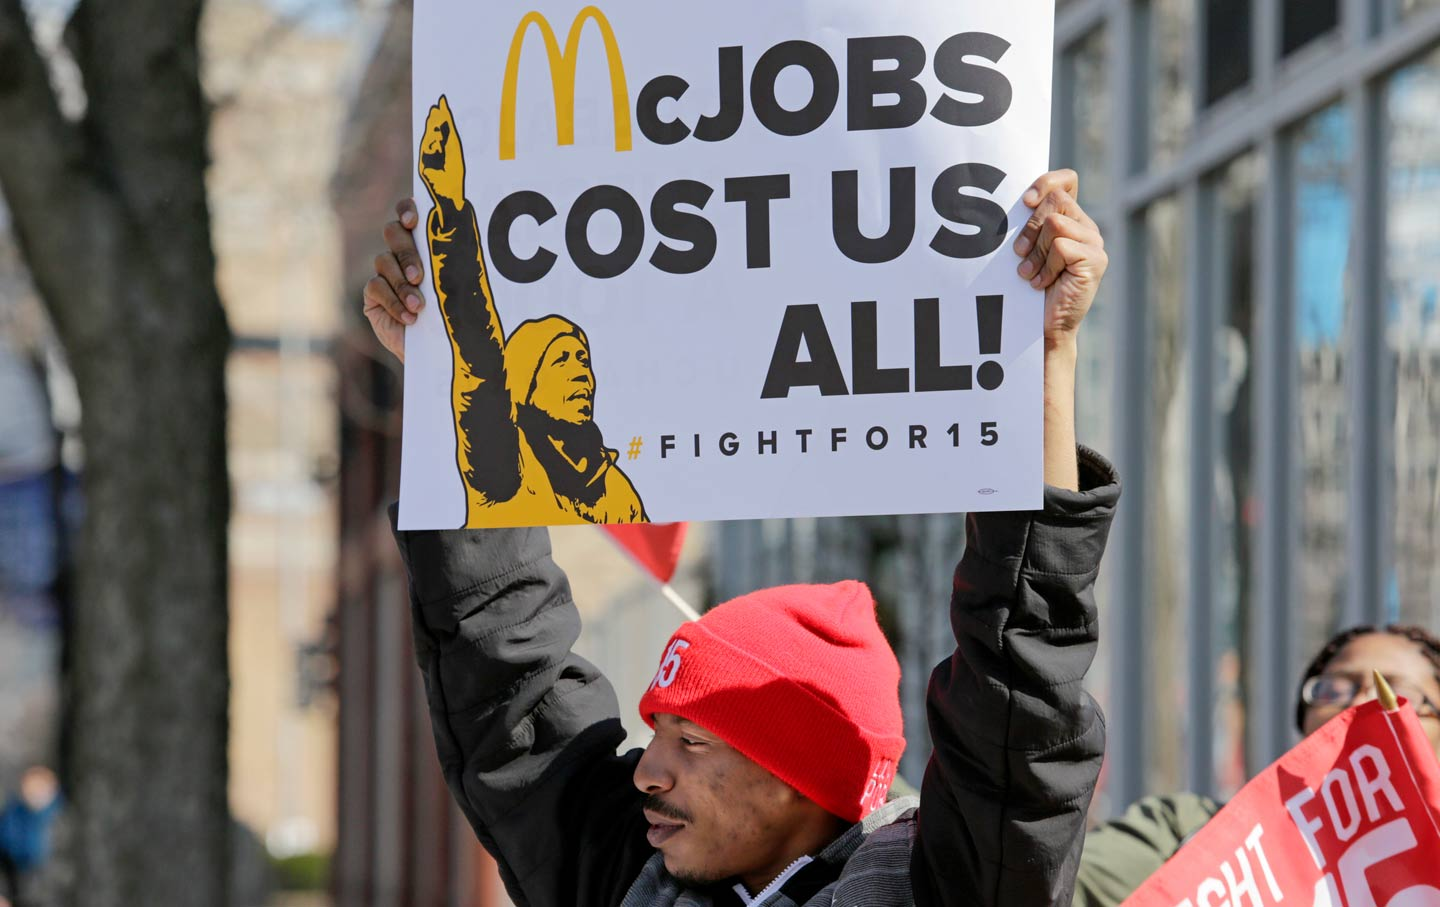 McDonald's Minimum Wage Protest